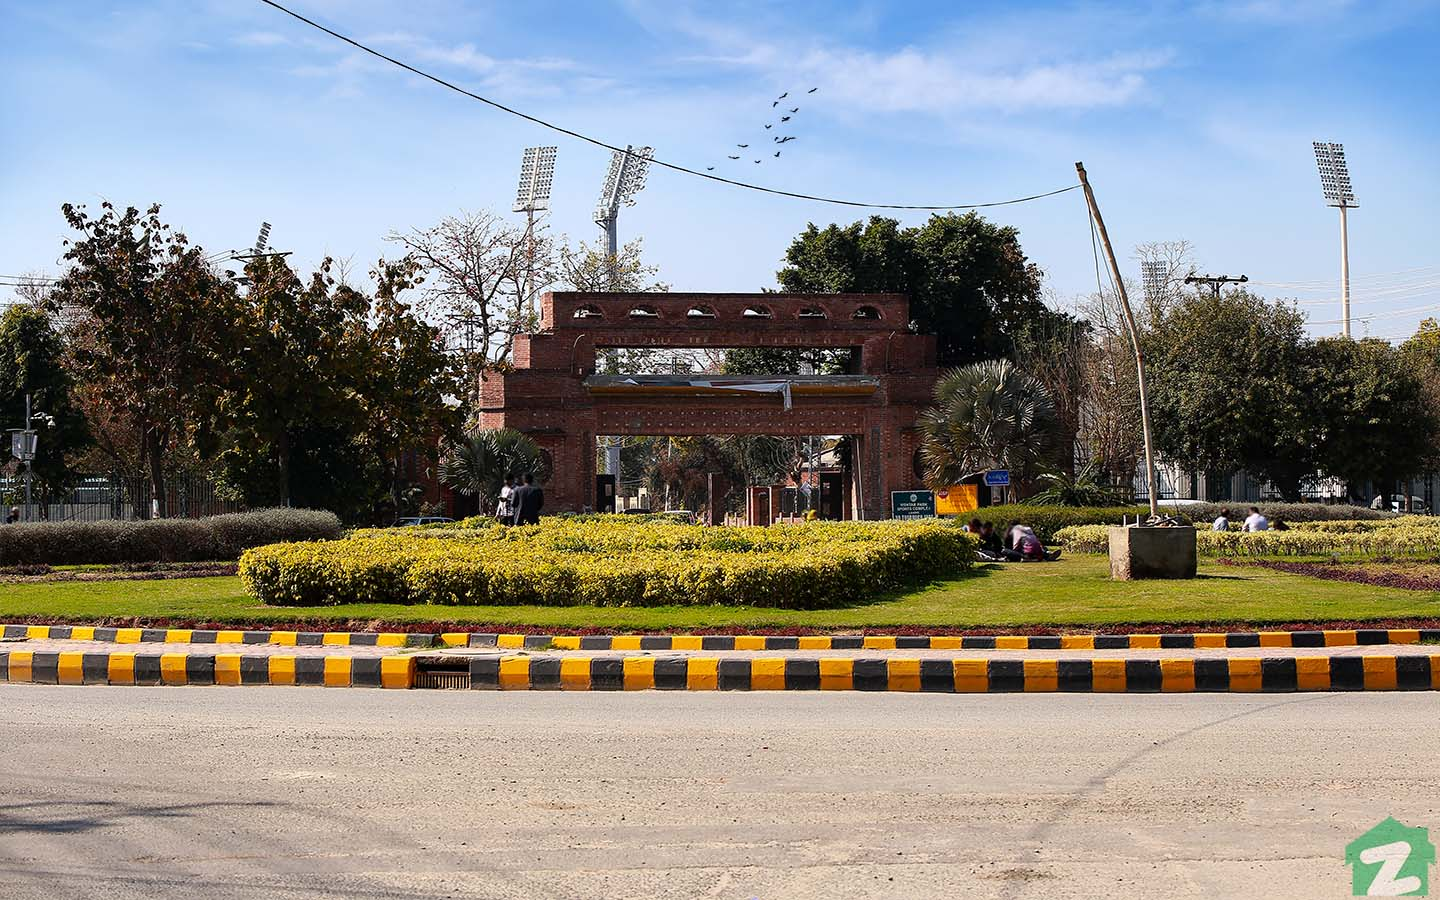 Gaddafi Stadium Lahore is only 5 minutes away from Model Town, Lahore